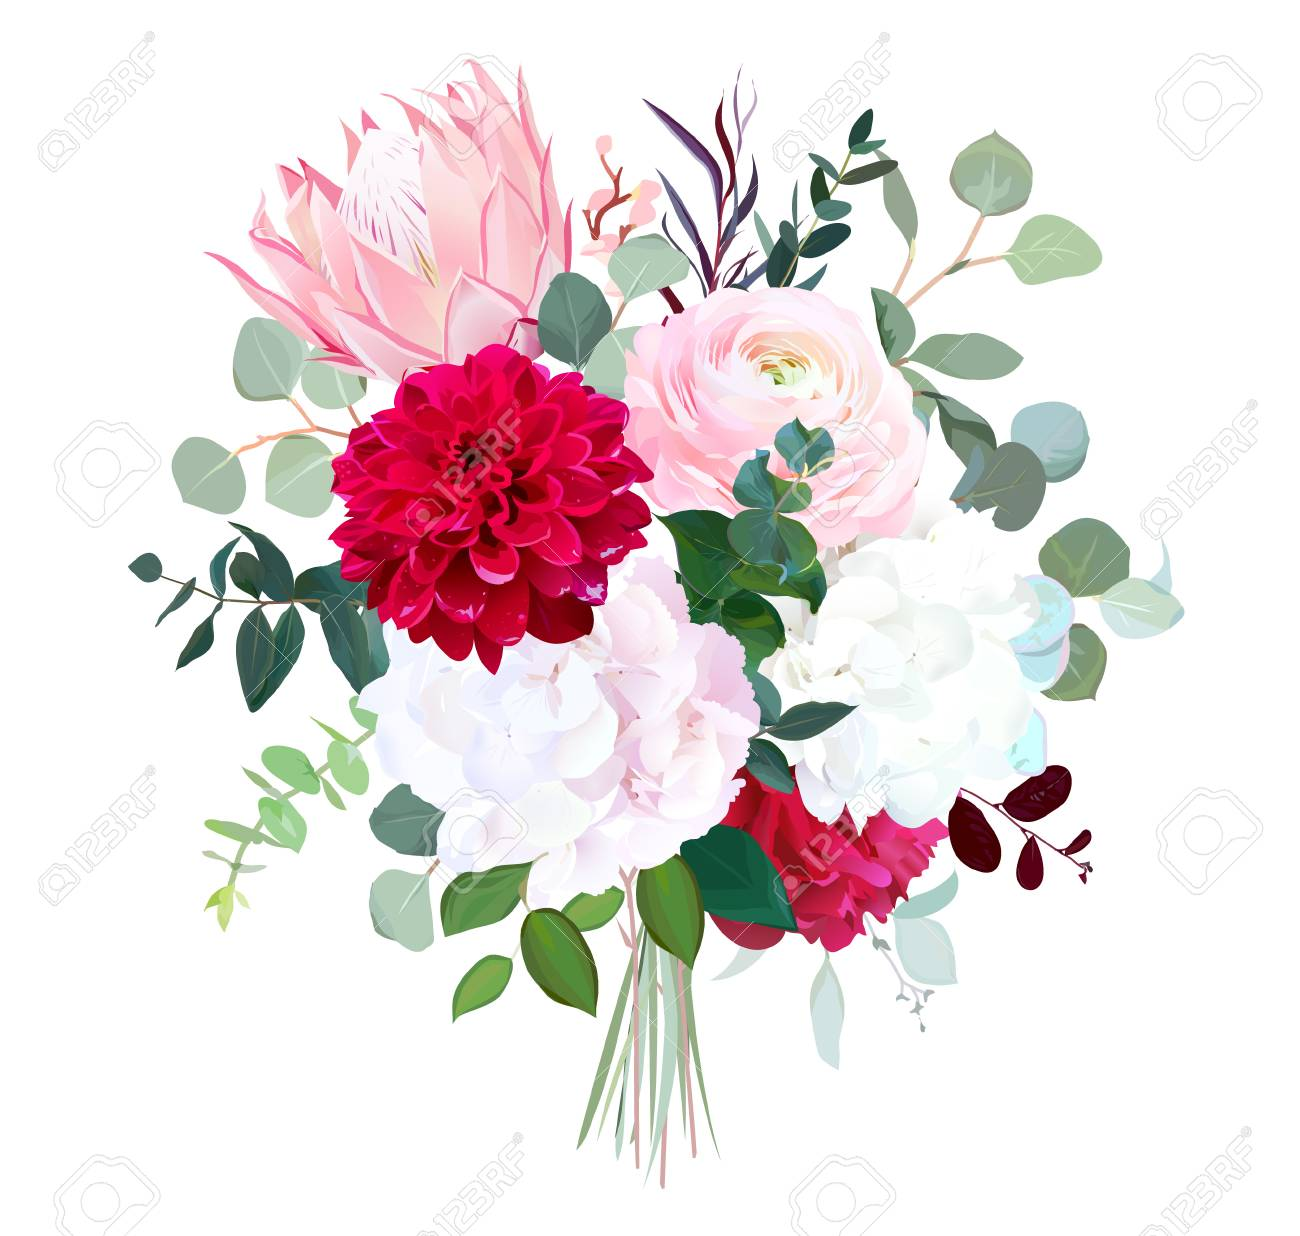 Pink Protea Ranunculus Burgundy Red Dahlia Peony White Hydrangea Royalty Free Cliparts Vectors And Stock Illustration Image 105588894